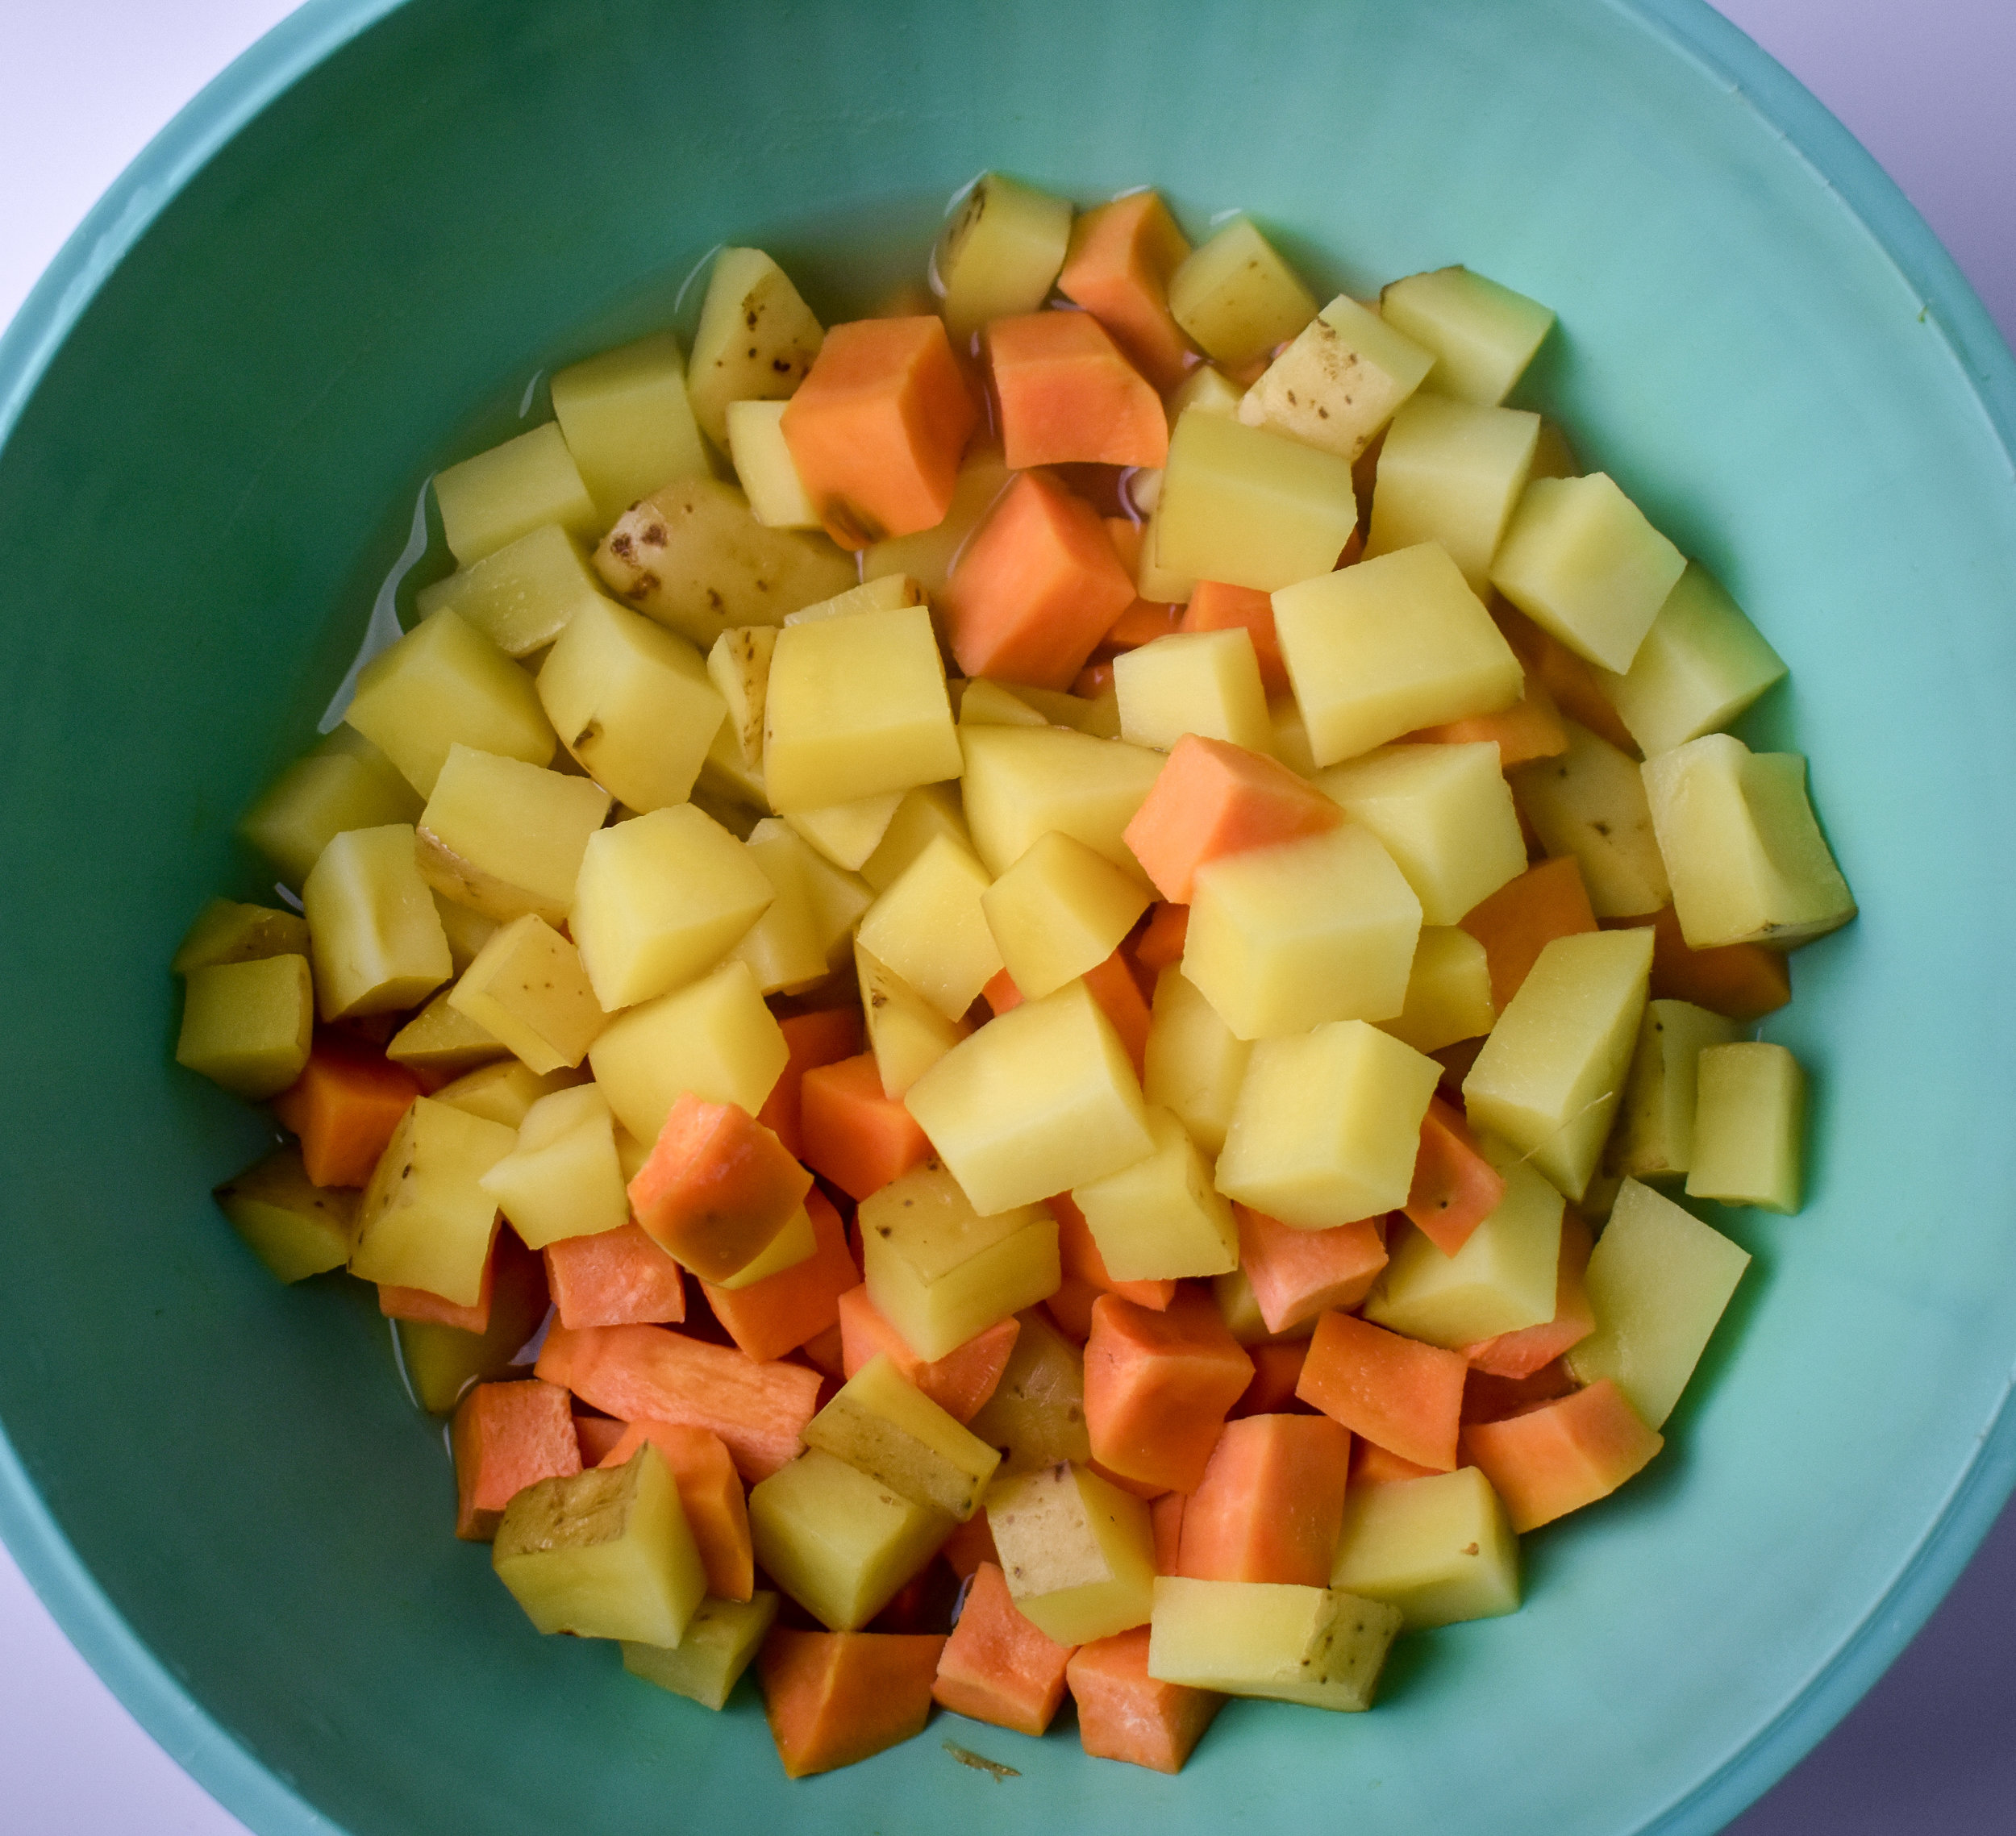 3. Once the potatoes are done in the microwave, carefully remove + stir. Place back into the microwave and cook for another 5 minutes. Once done, set aside until castiron pan is done on the veggies.